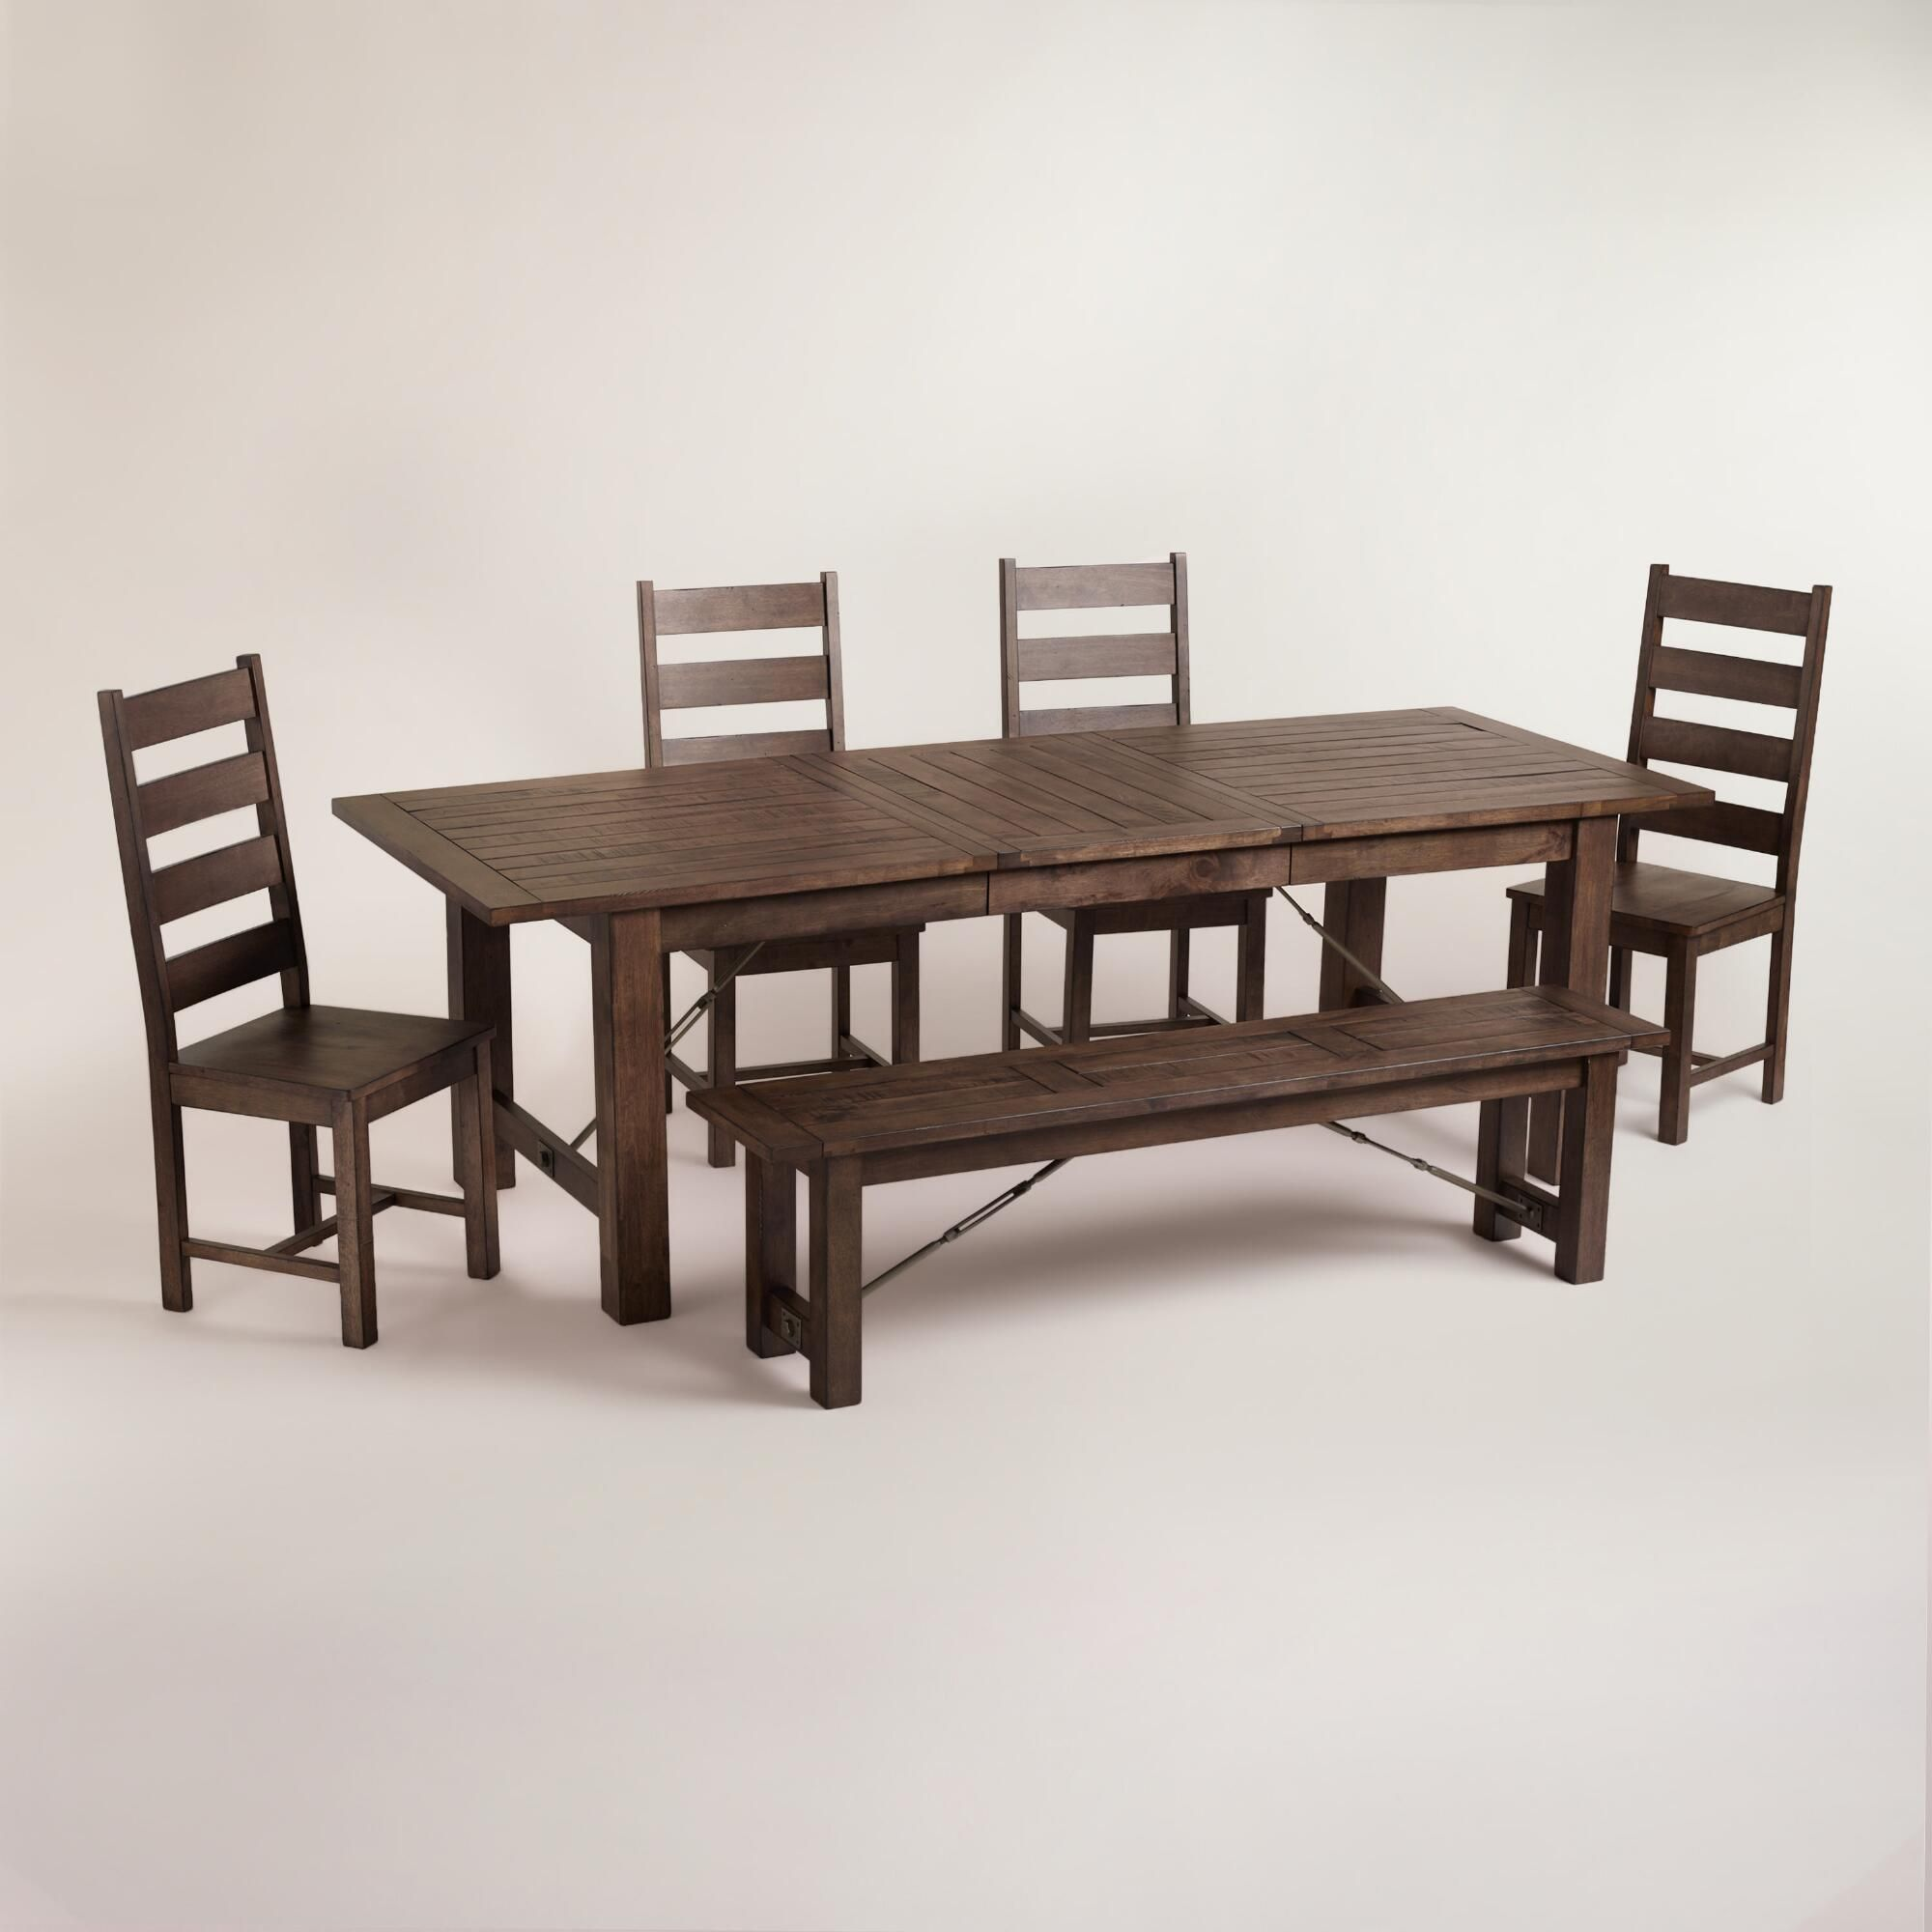 Versatile Kitchen Table And Chair Sets For Your Home: Beautifully Weathered Yet Built To Last, Our Garner